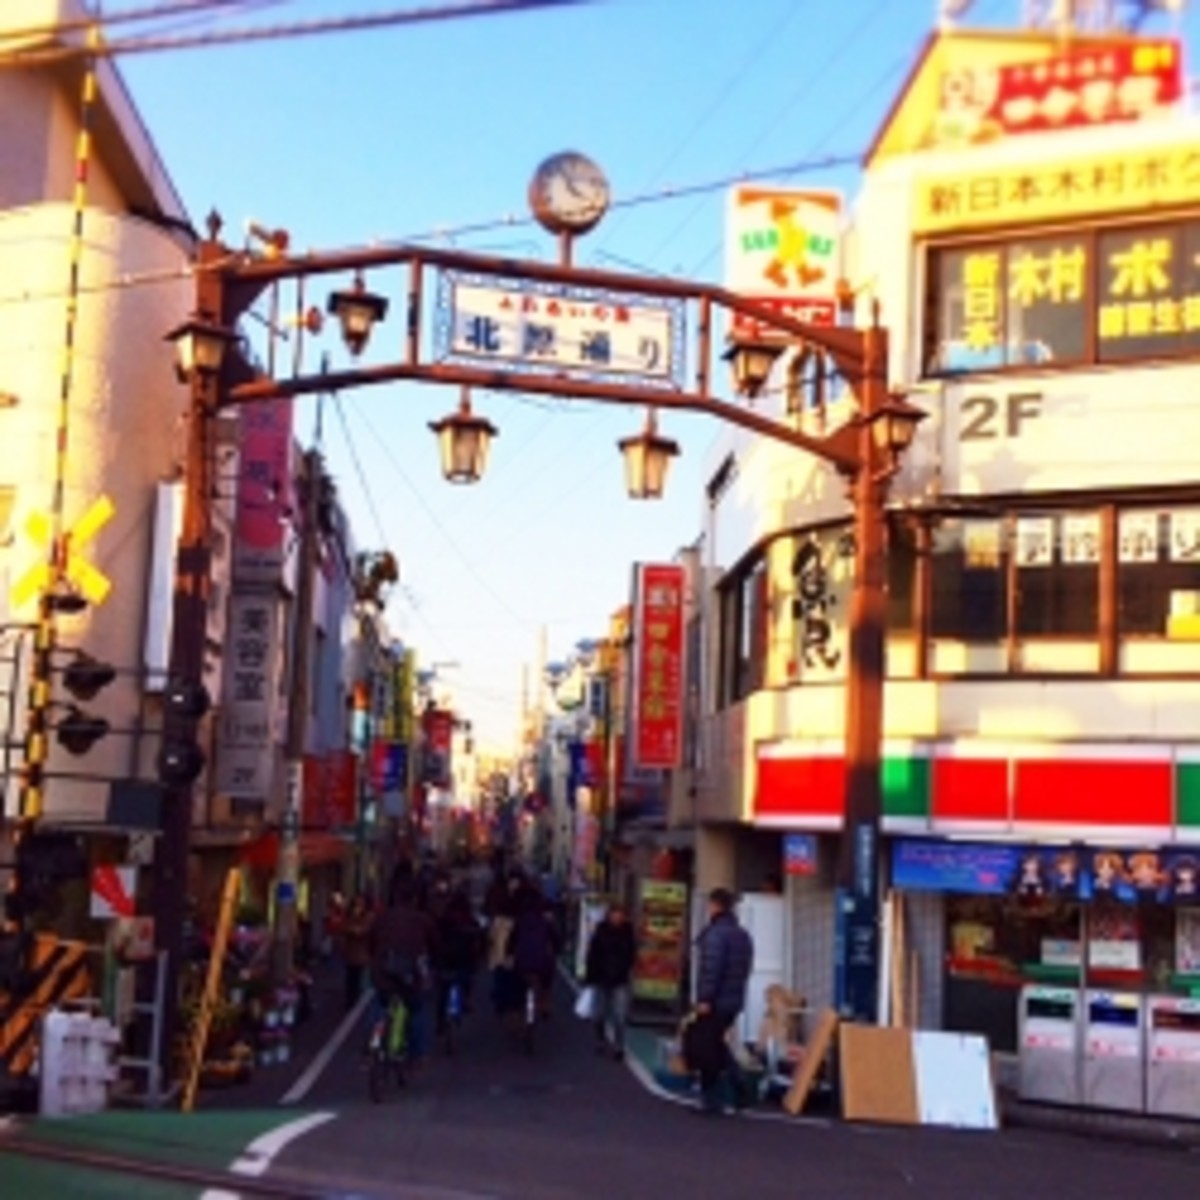 A Quaint Little Town in the Heart of Tokyo